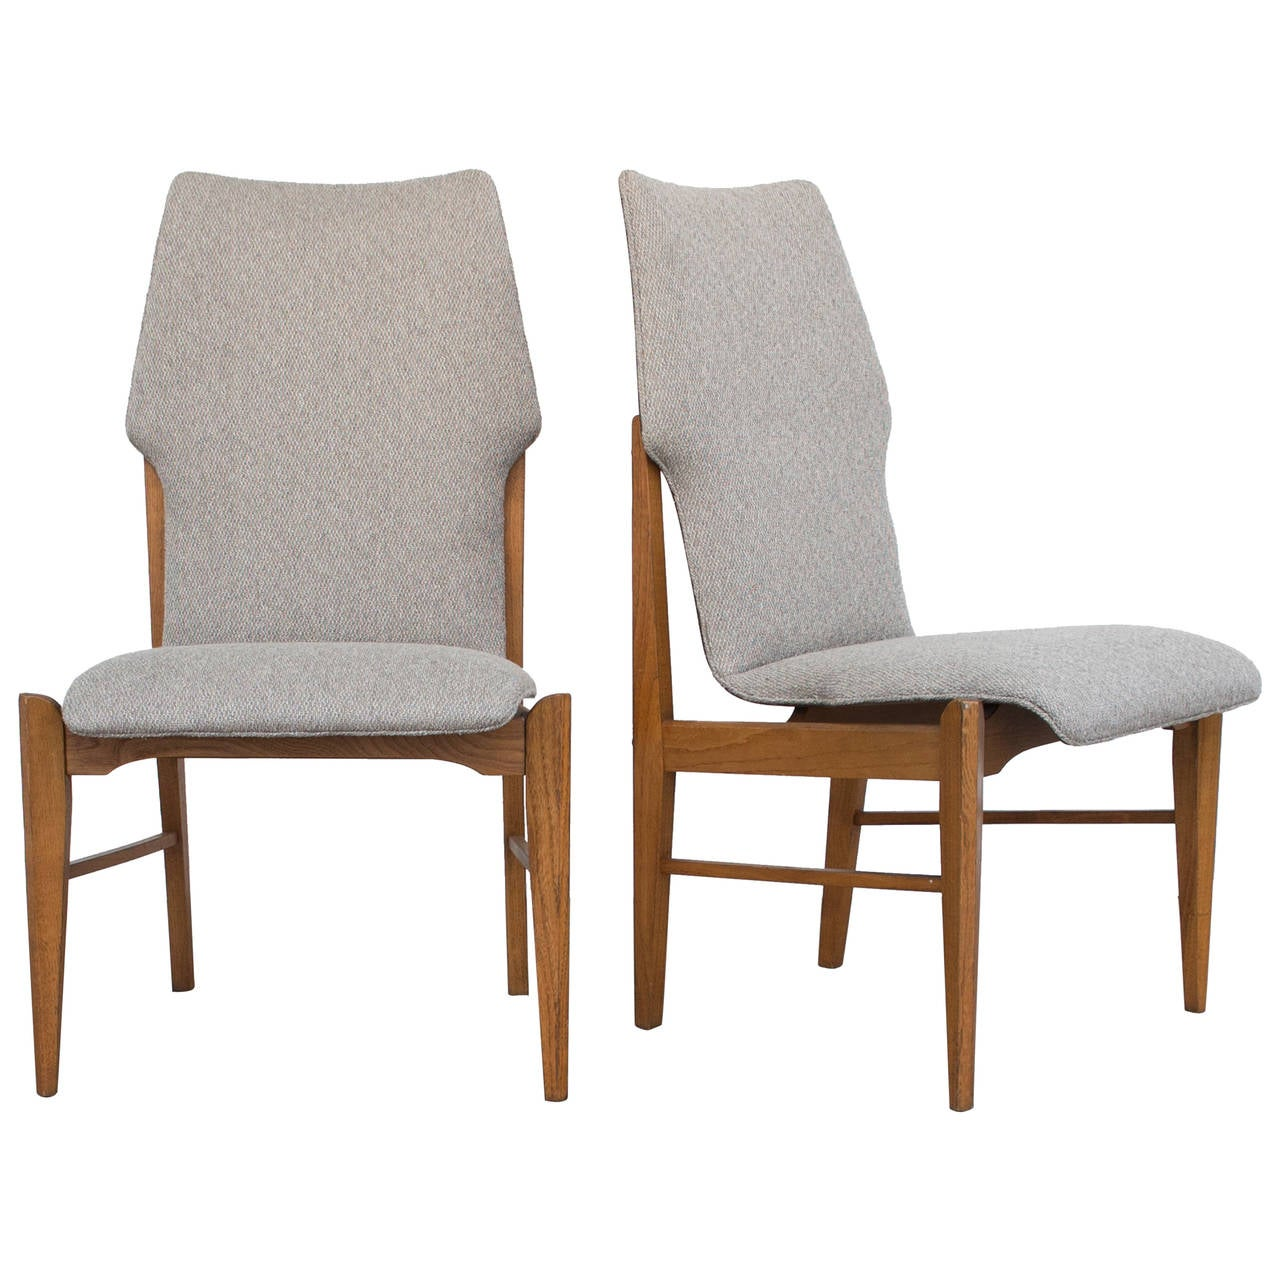 Four kodawood danish modern dining chairs at 1stdibs for Dining room furniture modern